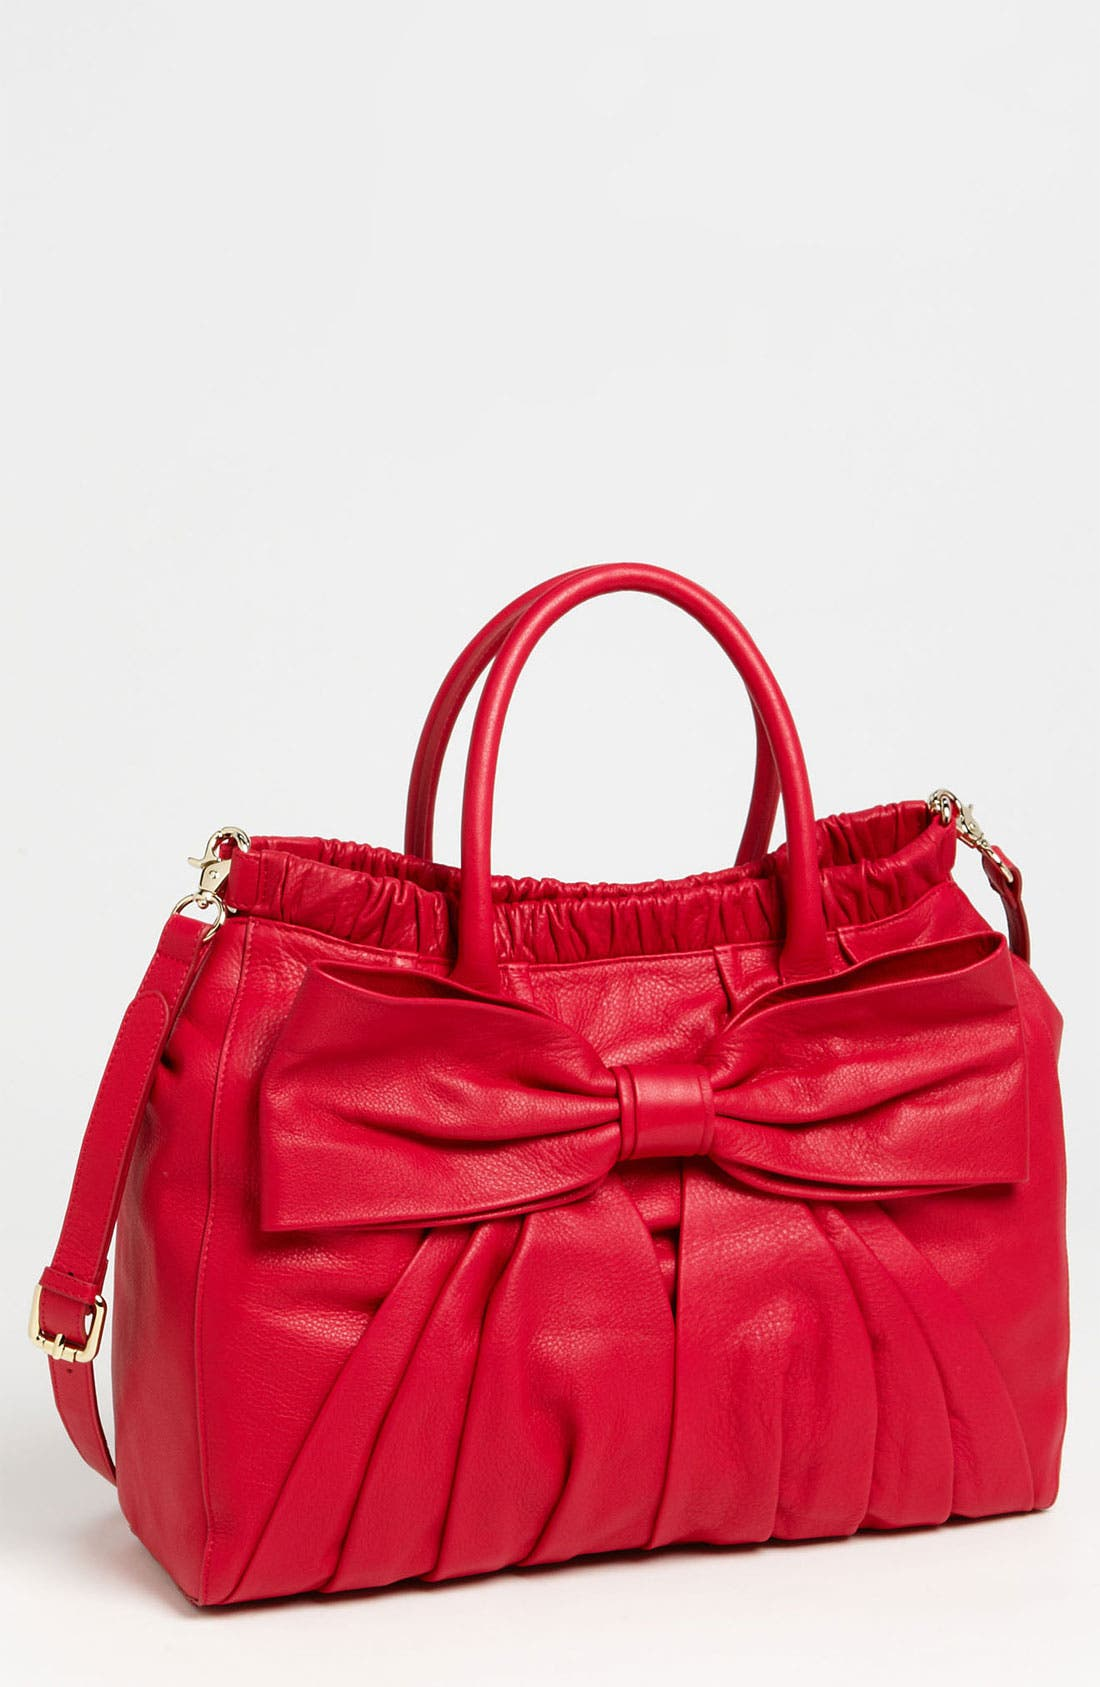 Alternate Image 1 Selected - RED Valentino 'Bow' Top Handle Bag